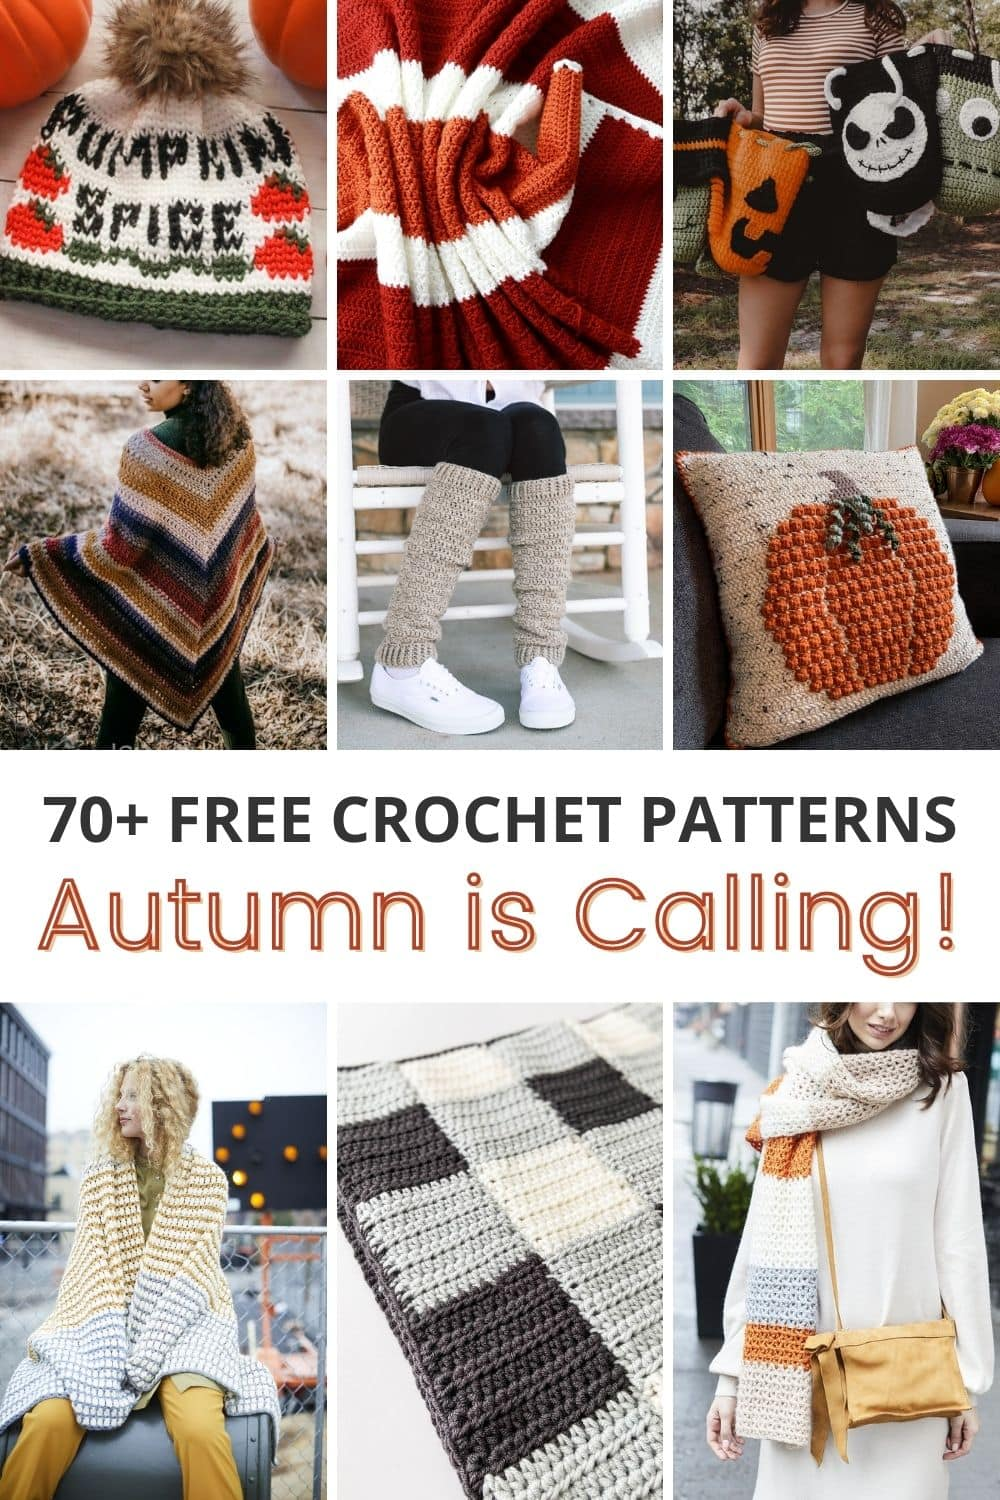 Autumn is Calling: 70+ FREE Fall Themed Crochet Patterns for 2021 via @sigonimacaronii